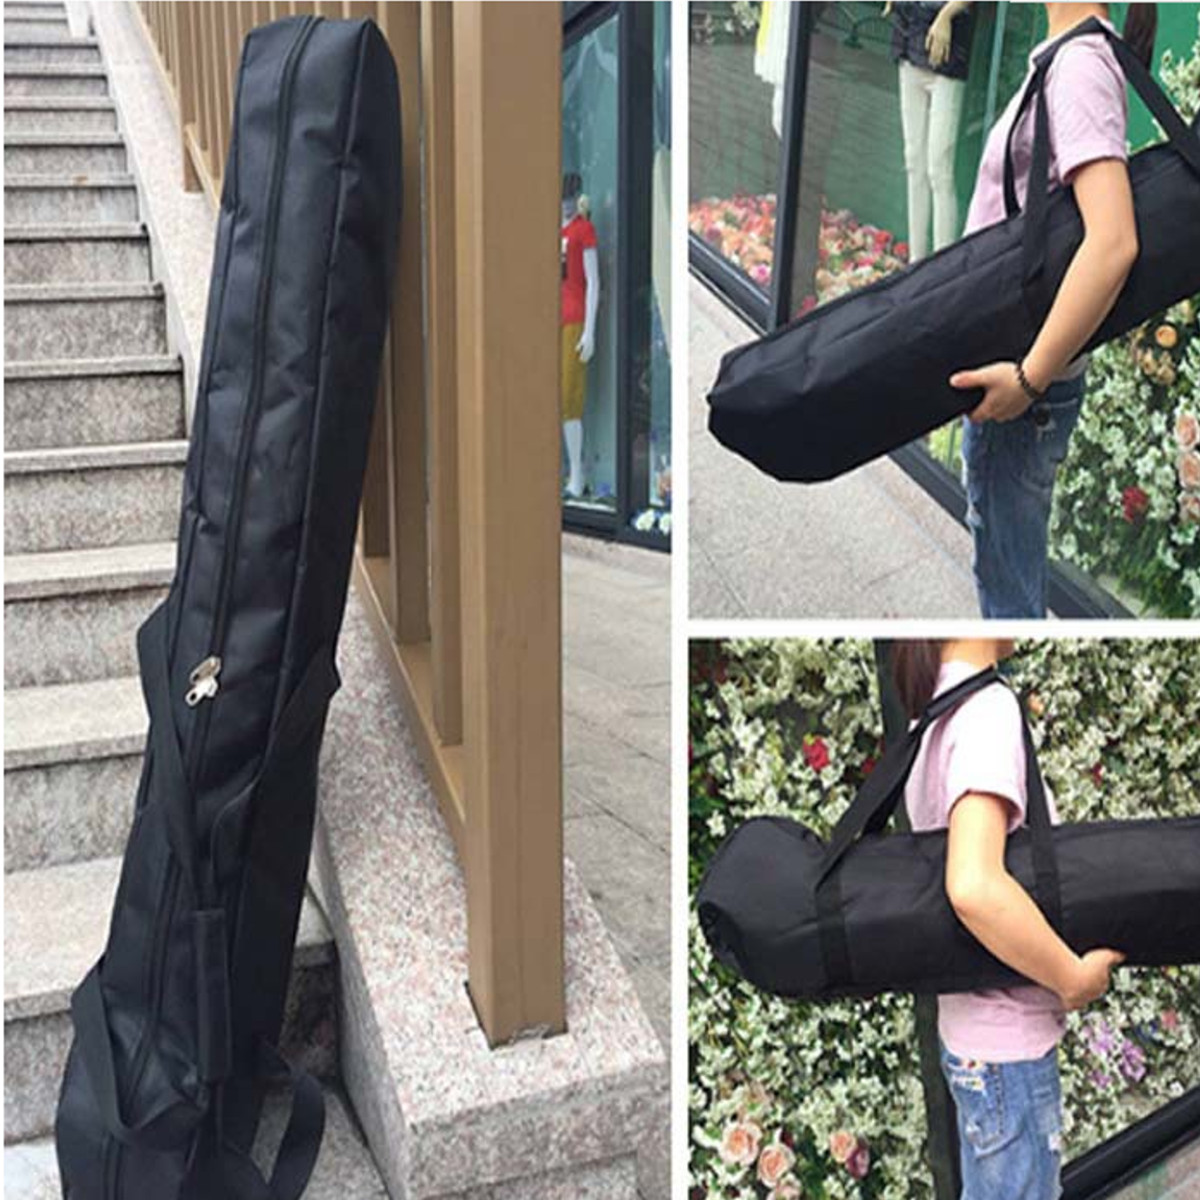 Universal Scooter Carry Bag Case Smart Skate Board Hoover Board 5.5 Inch